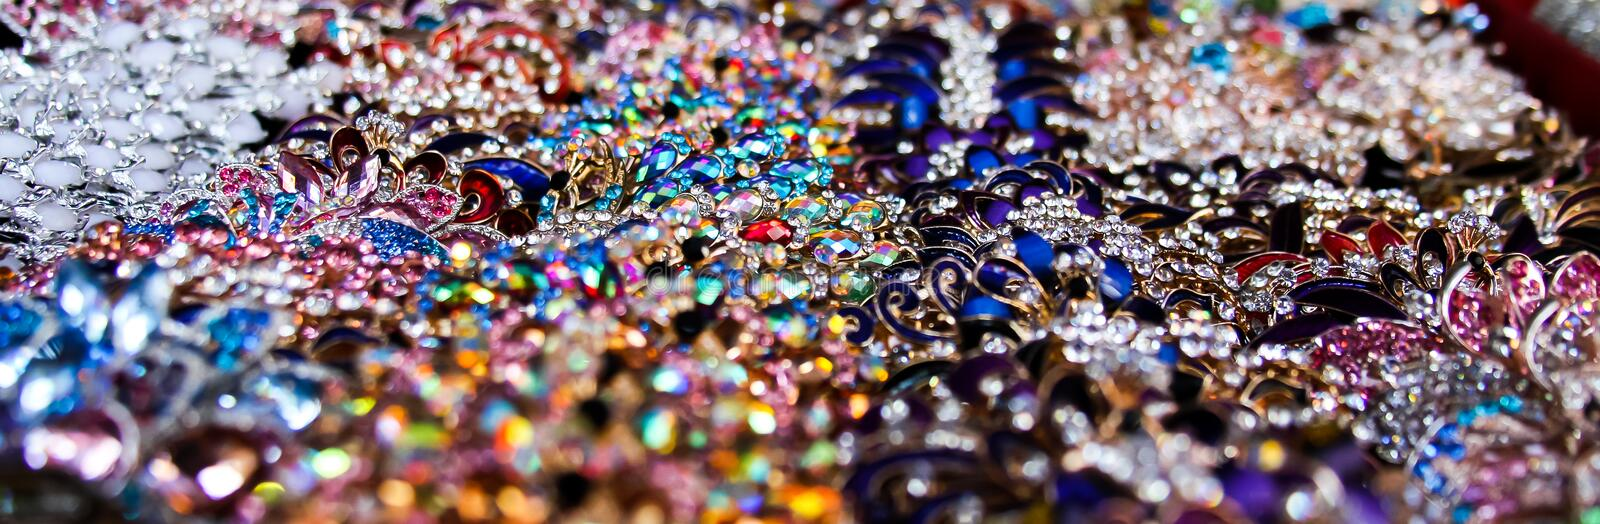 Jewelry for all tastes, gold, silver, precious stones and platinum. royalty free stock photo